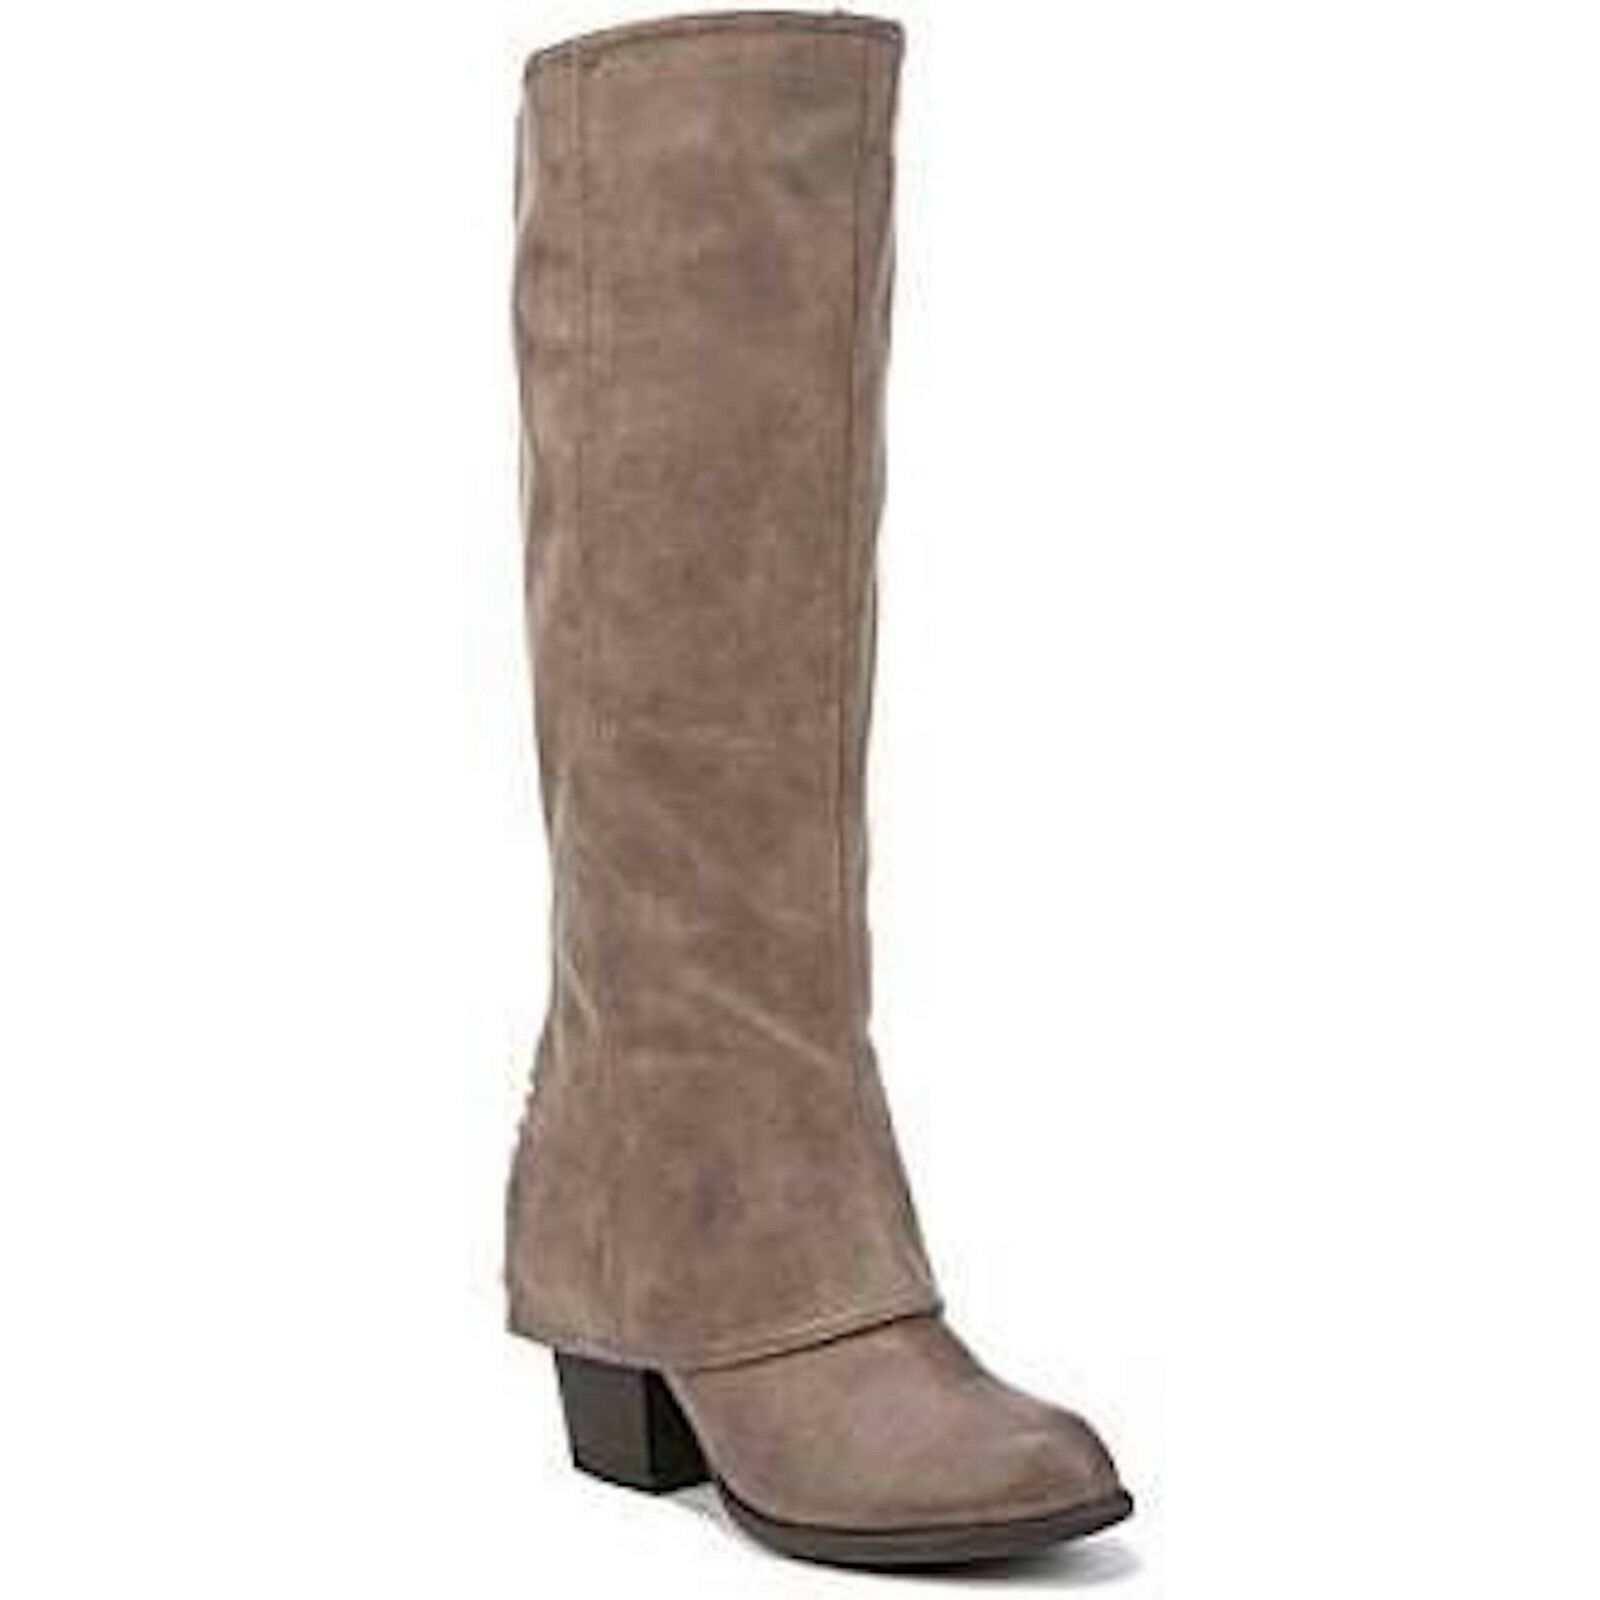 NEW IN BOX Women's Fergalicious LUNDRY Boots Size 8 M color  Sand